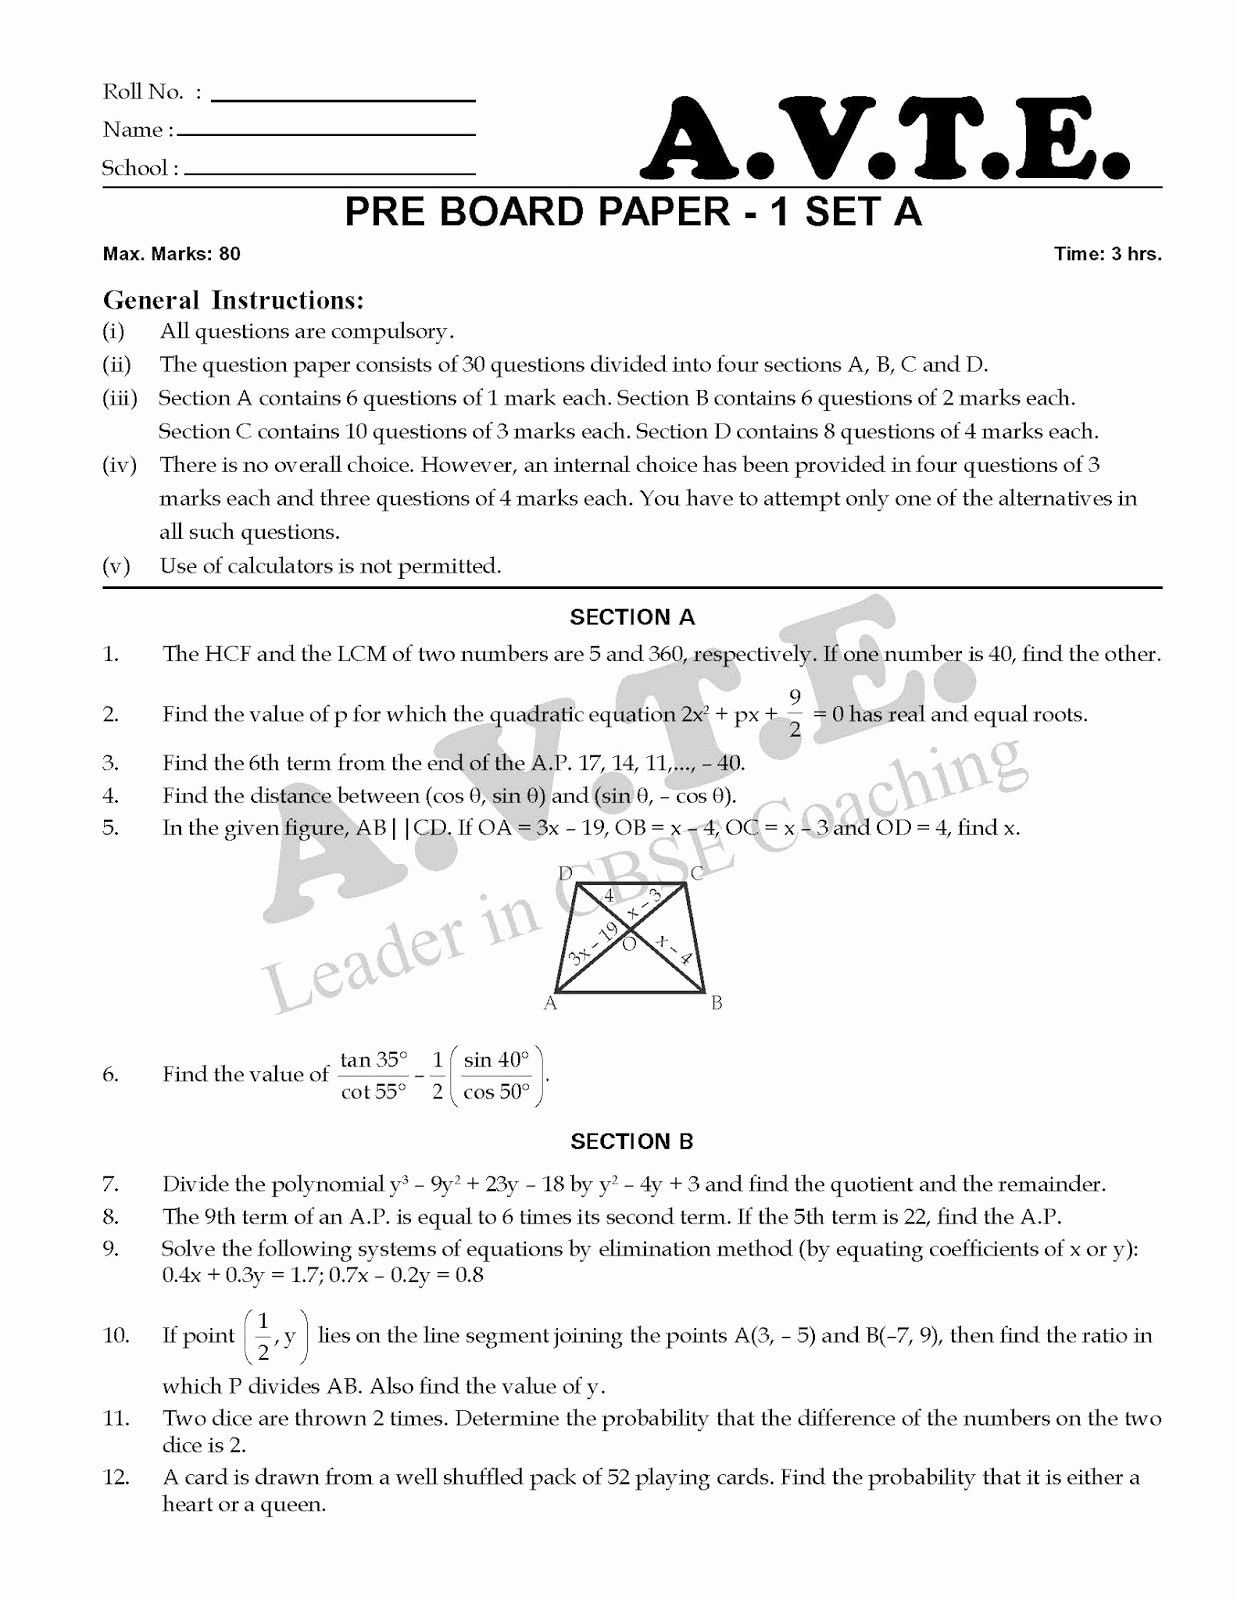 Rational Exponents Equations Worksheet